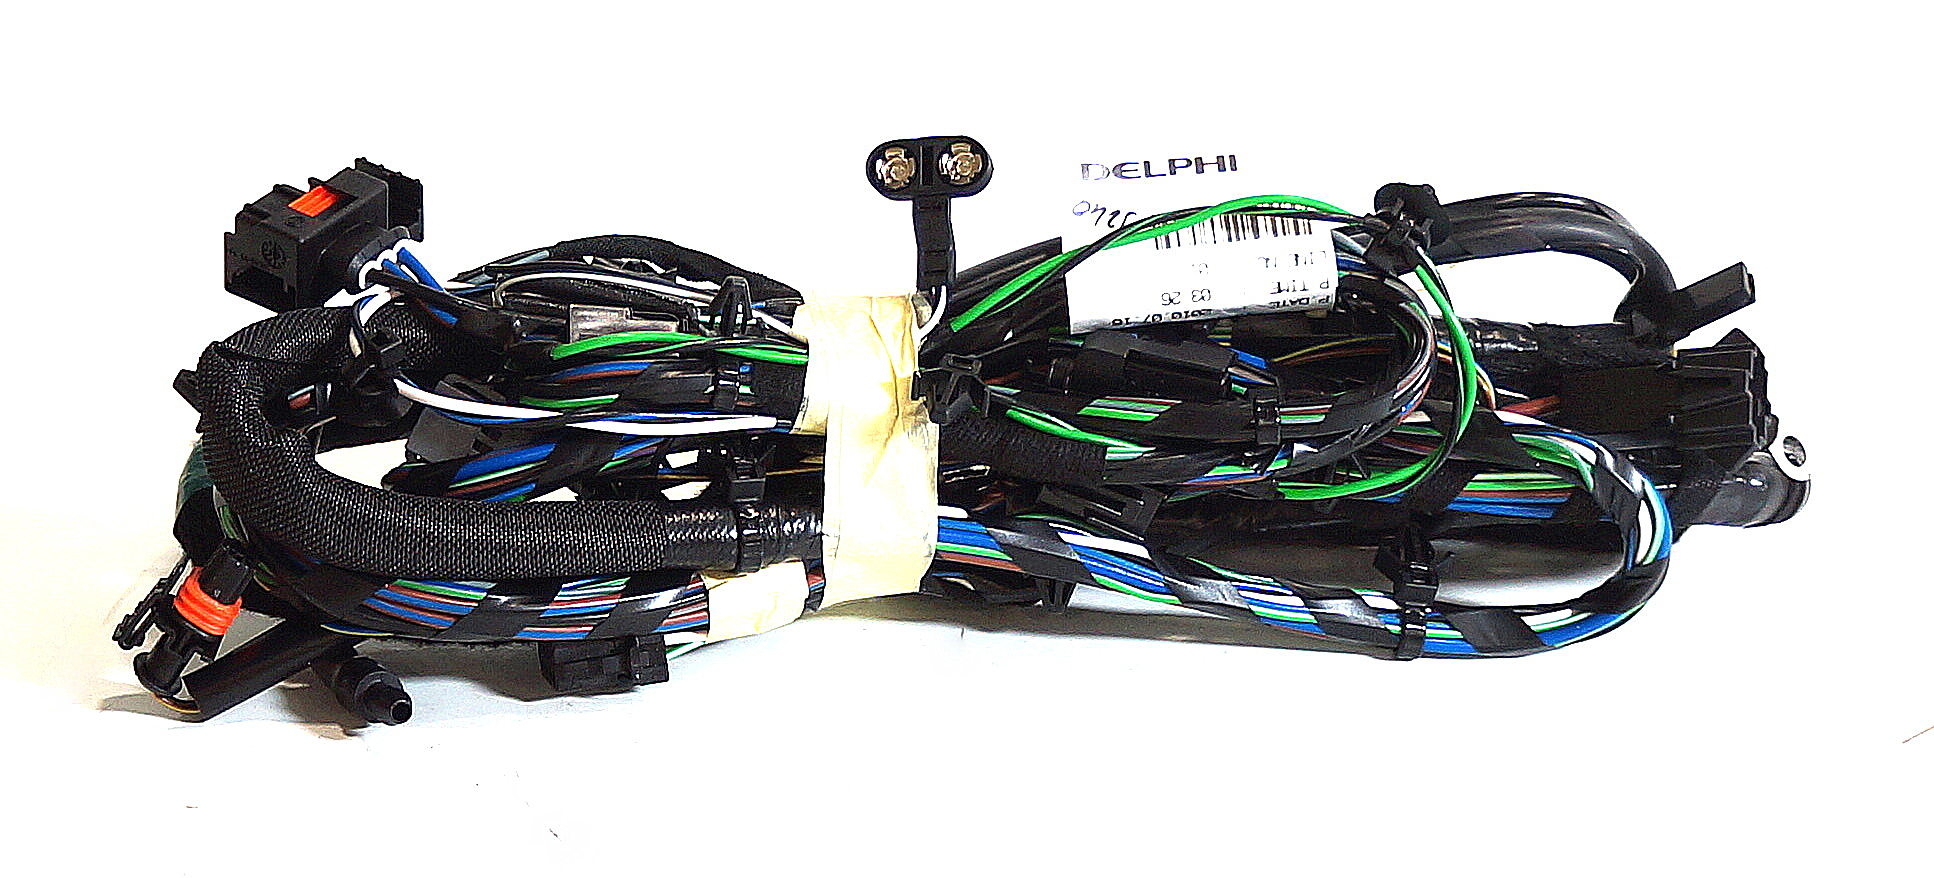 12795338 esaabparts com saab 9 3 (9440) \u003e electrical parts \u003e wiring  at suagrazia.org